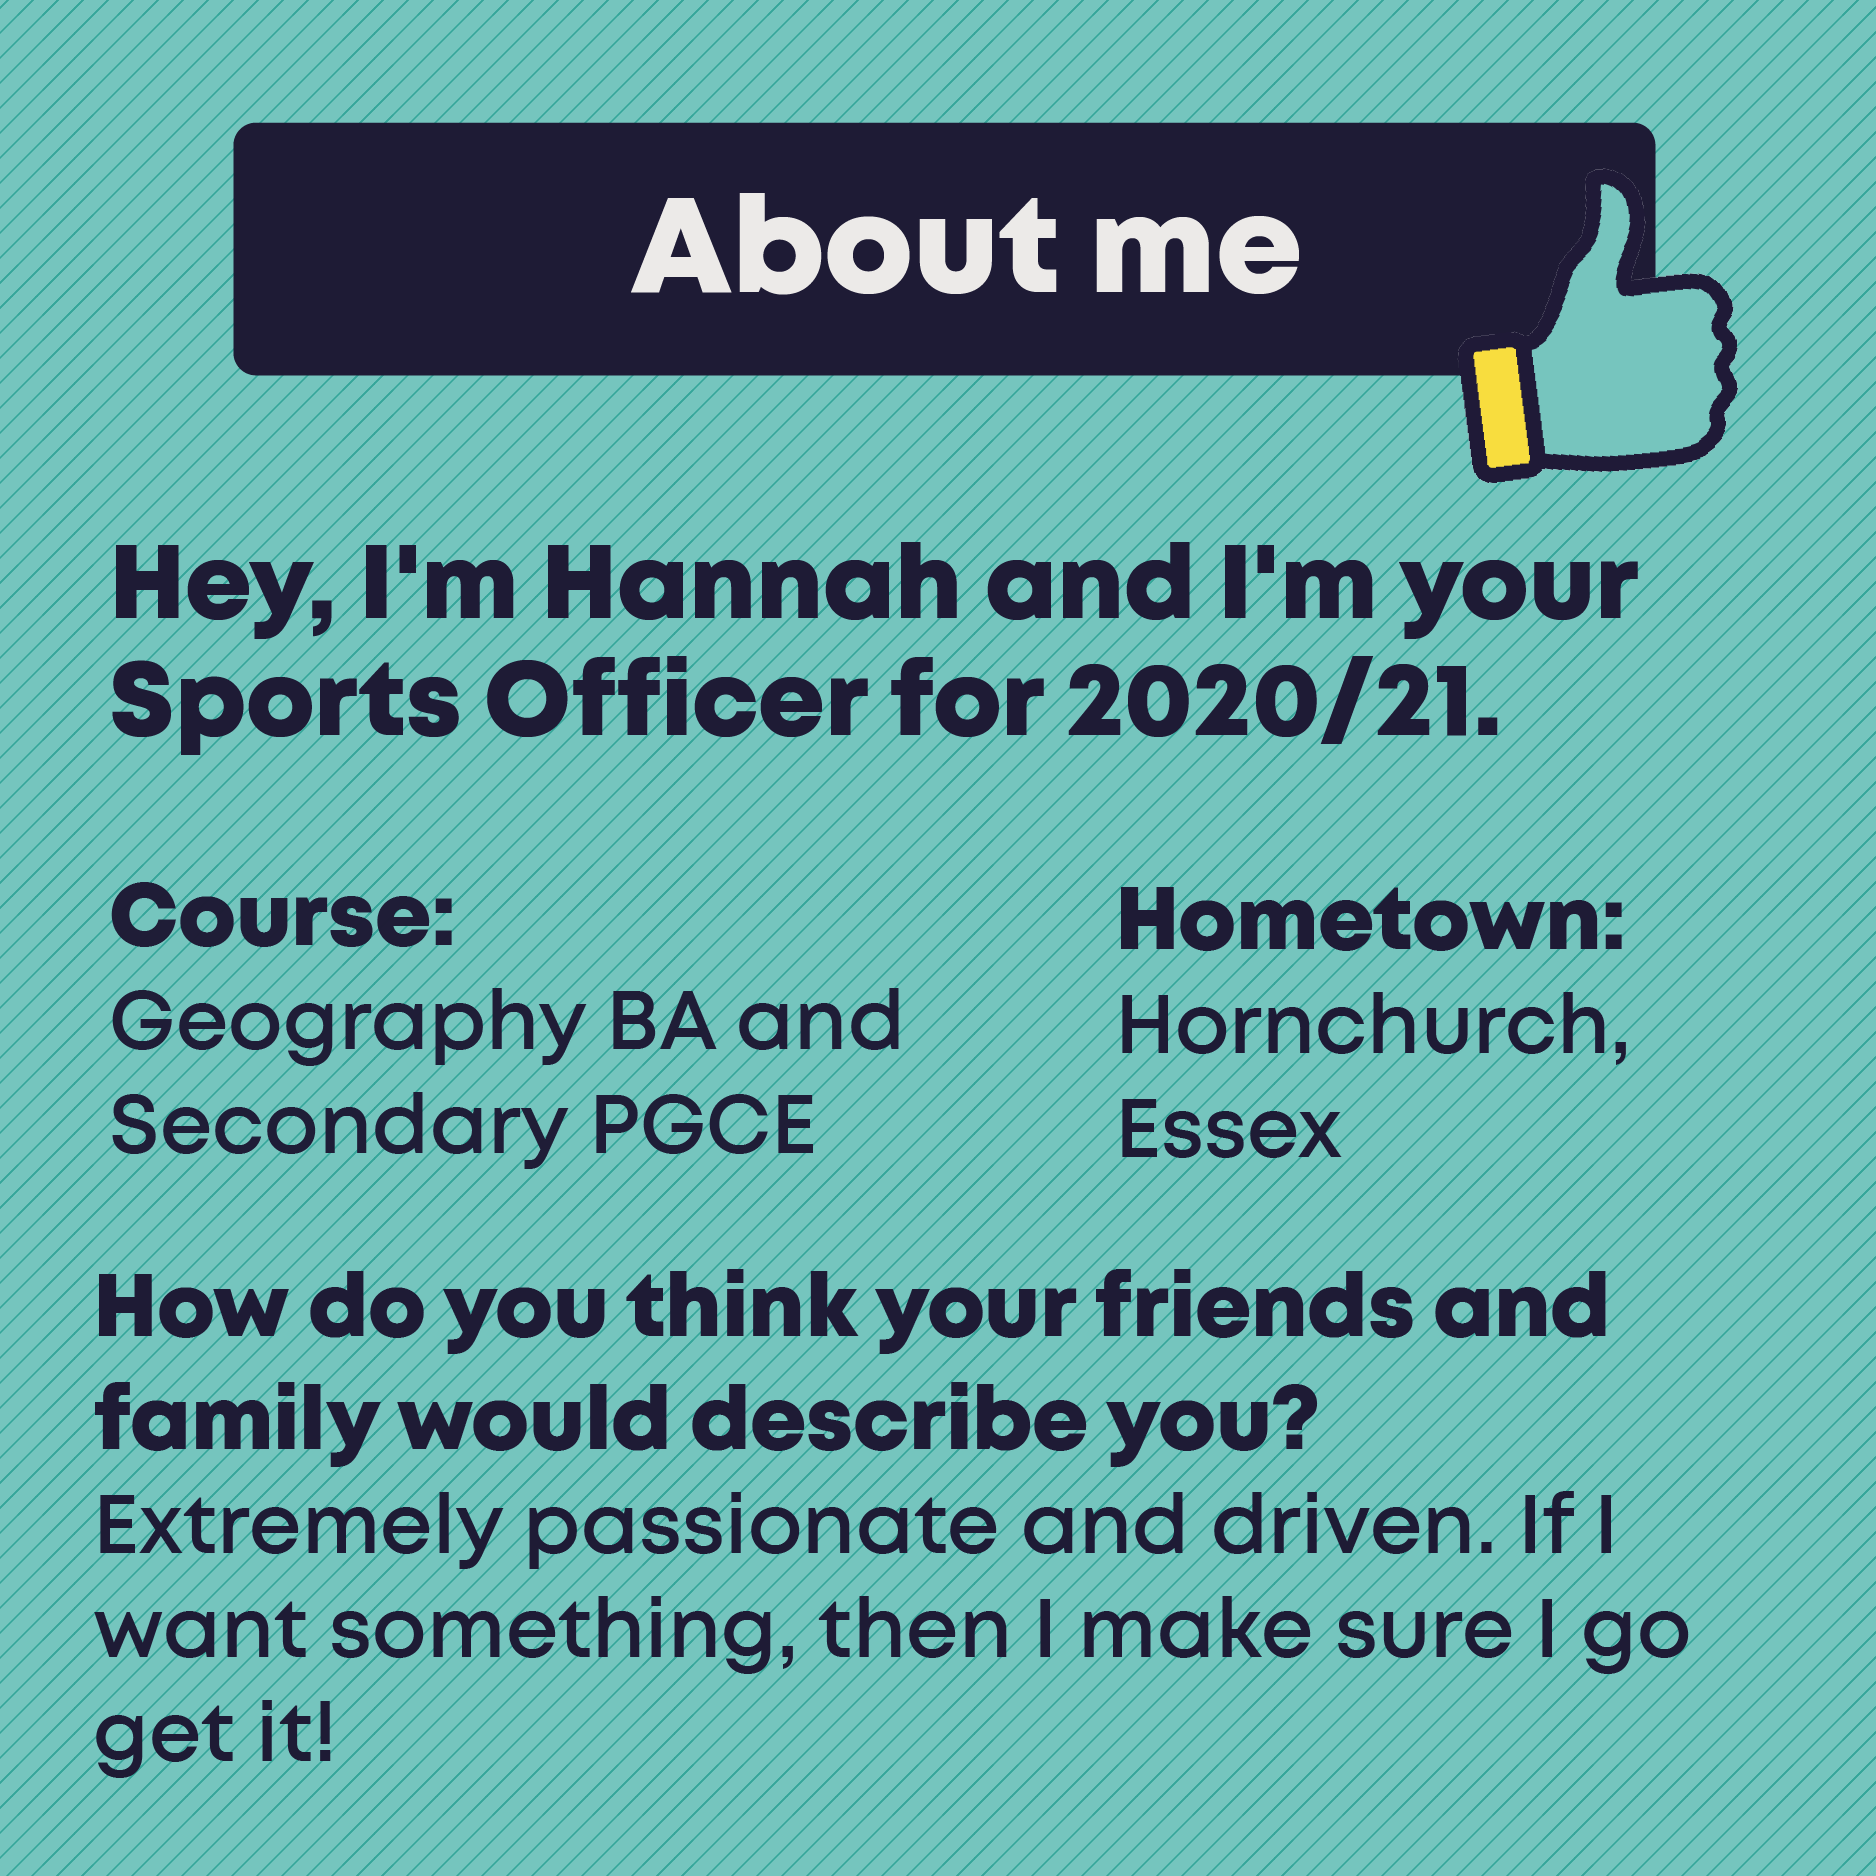 About me. Hey, I'm Hannah and I'm your Sports Officer for 2020/21. Course: Geography BA and Secondary PGCE. Hometown: Hornchurch, Essex.   How do you think your friends and family would describe you? Extremely passionate and driven. If I want something, then I make sure I go get it!